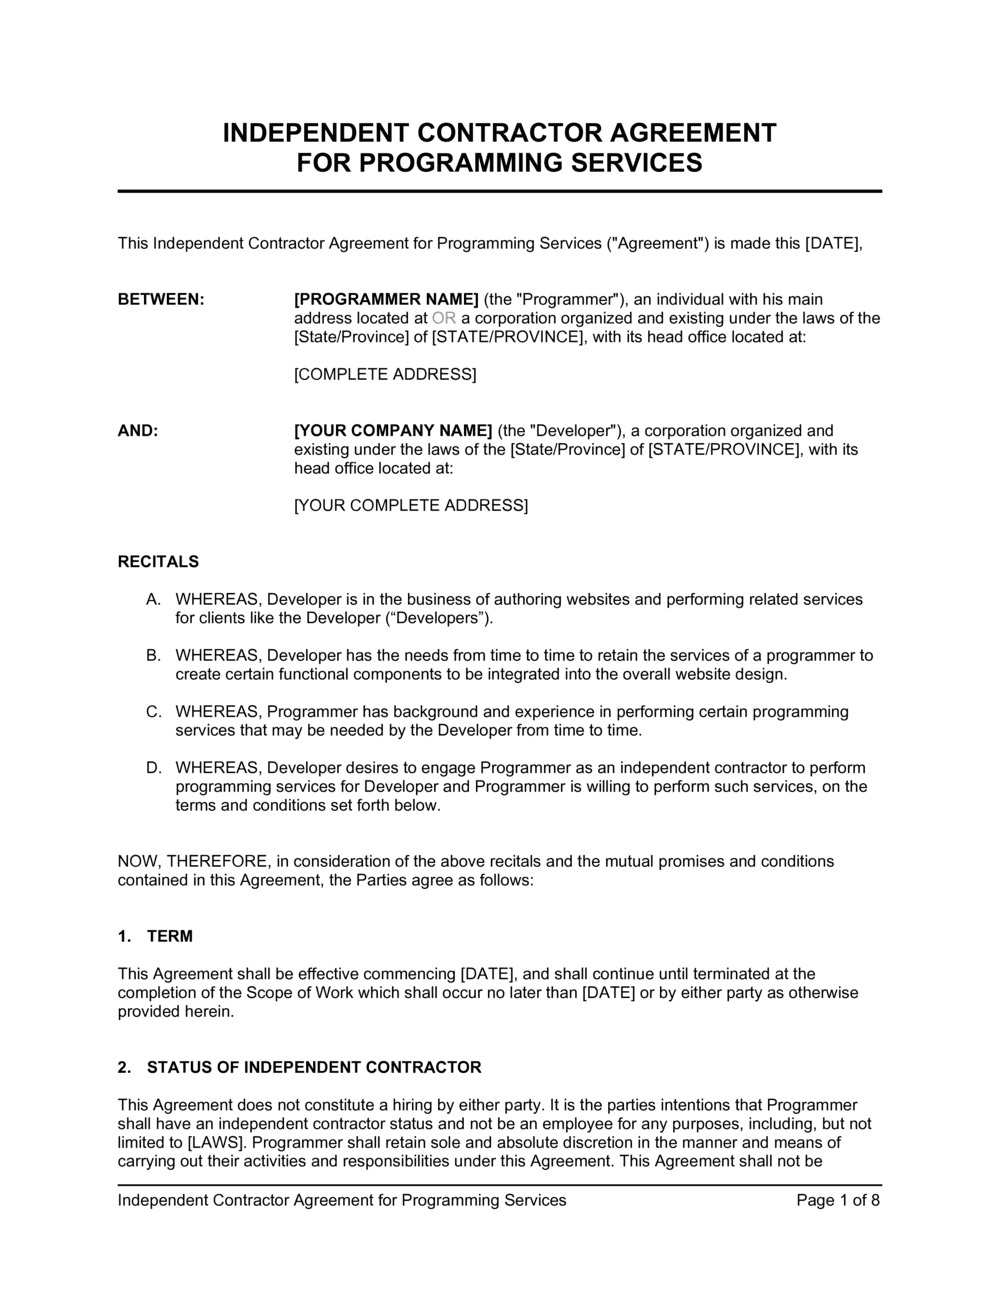 Independent Contractor Agreement For Programming Services Template By Business In A Box